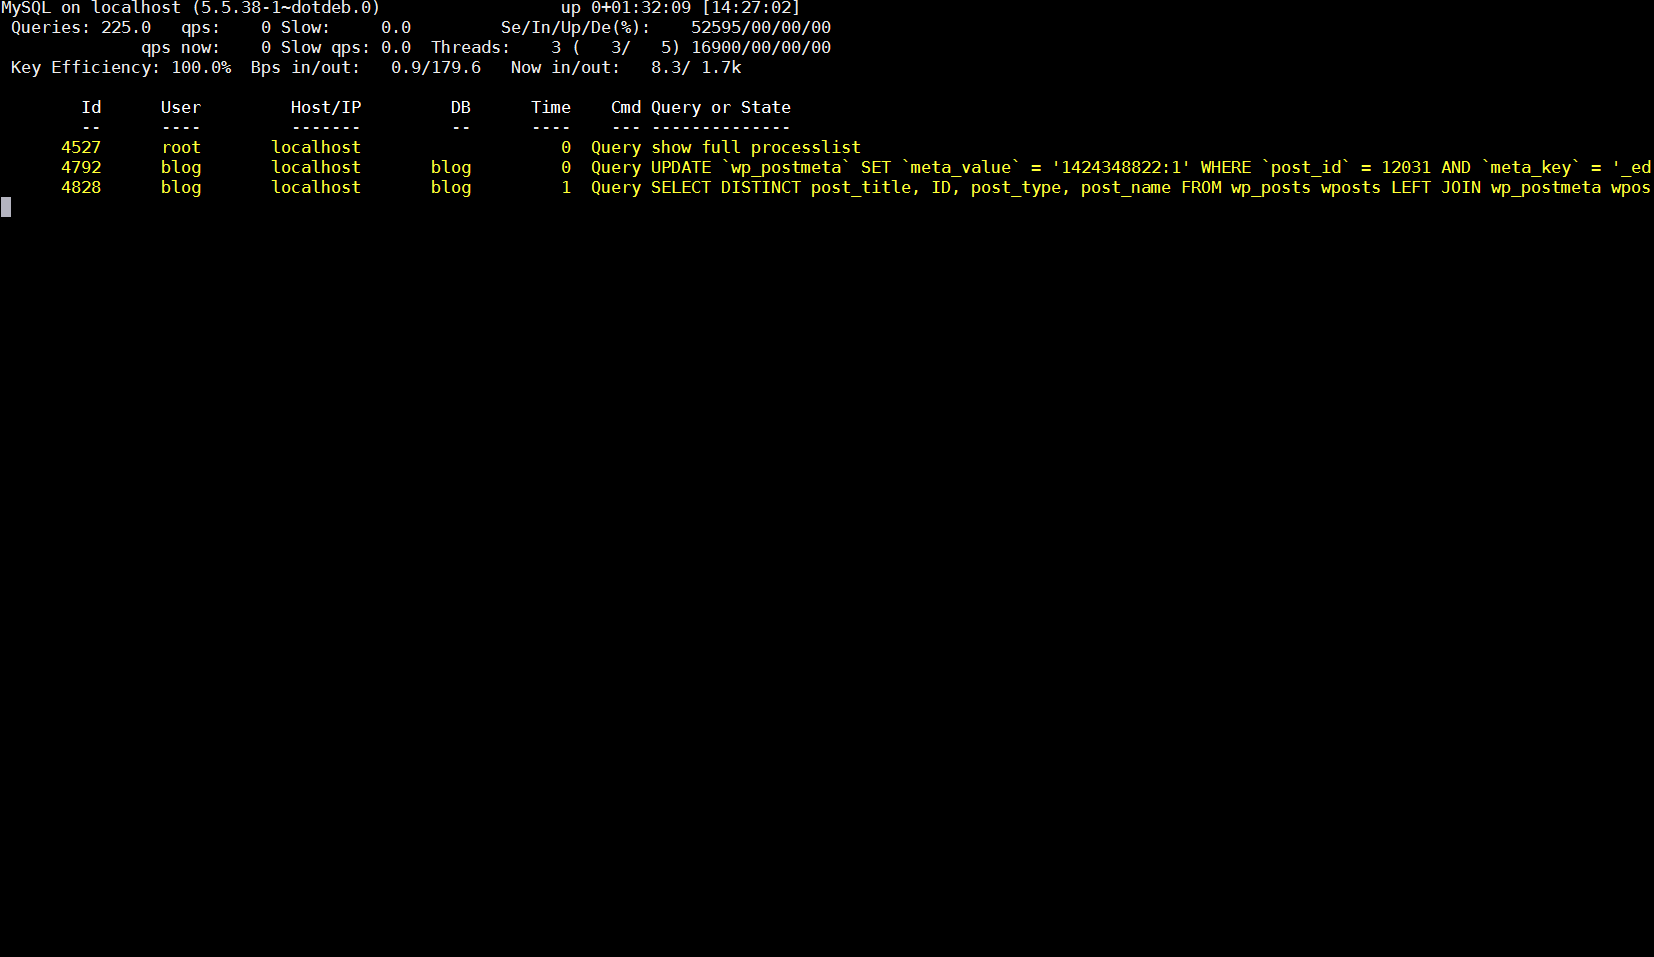 mysql-top-running-on-gnu-linux-server-tracking-sql-queries-in-console-screenshot.png